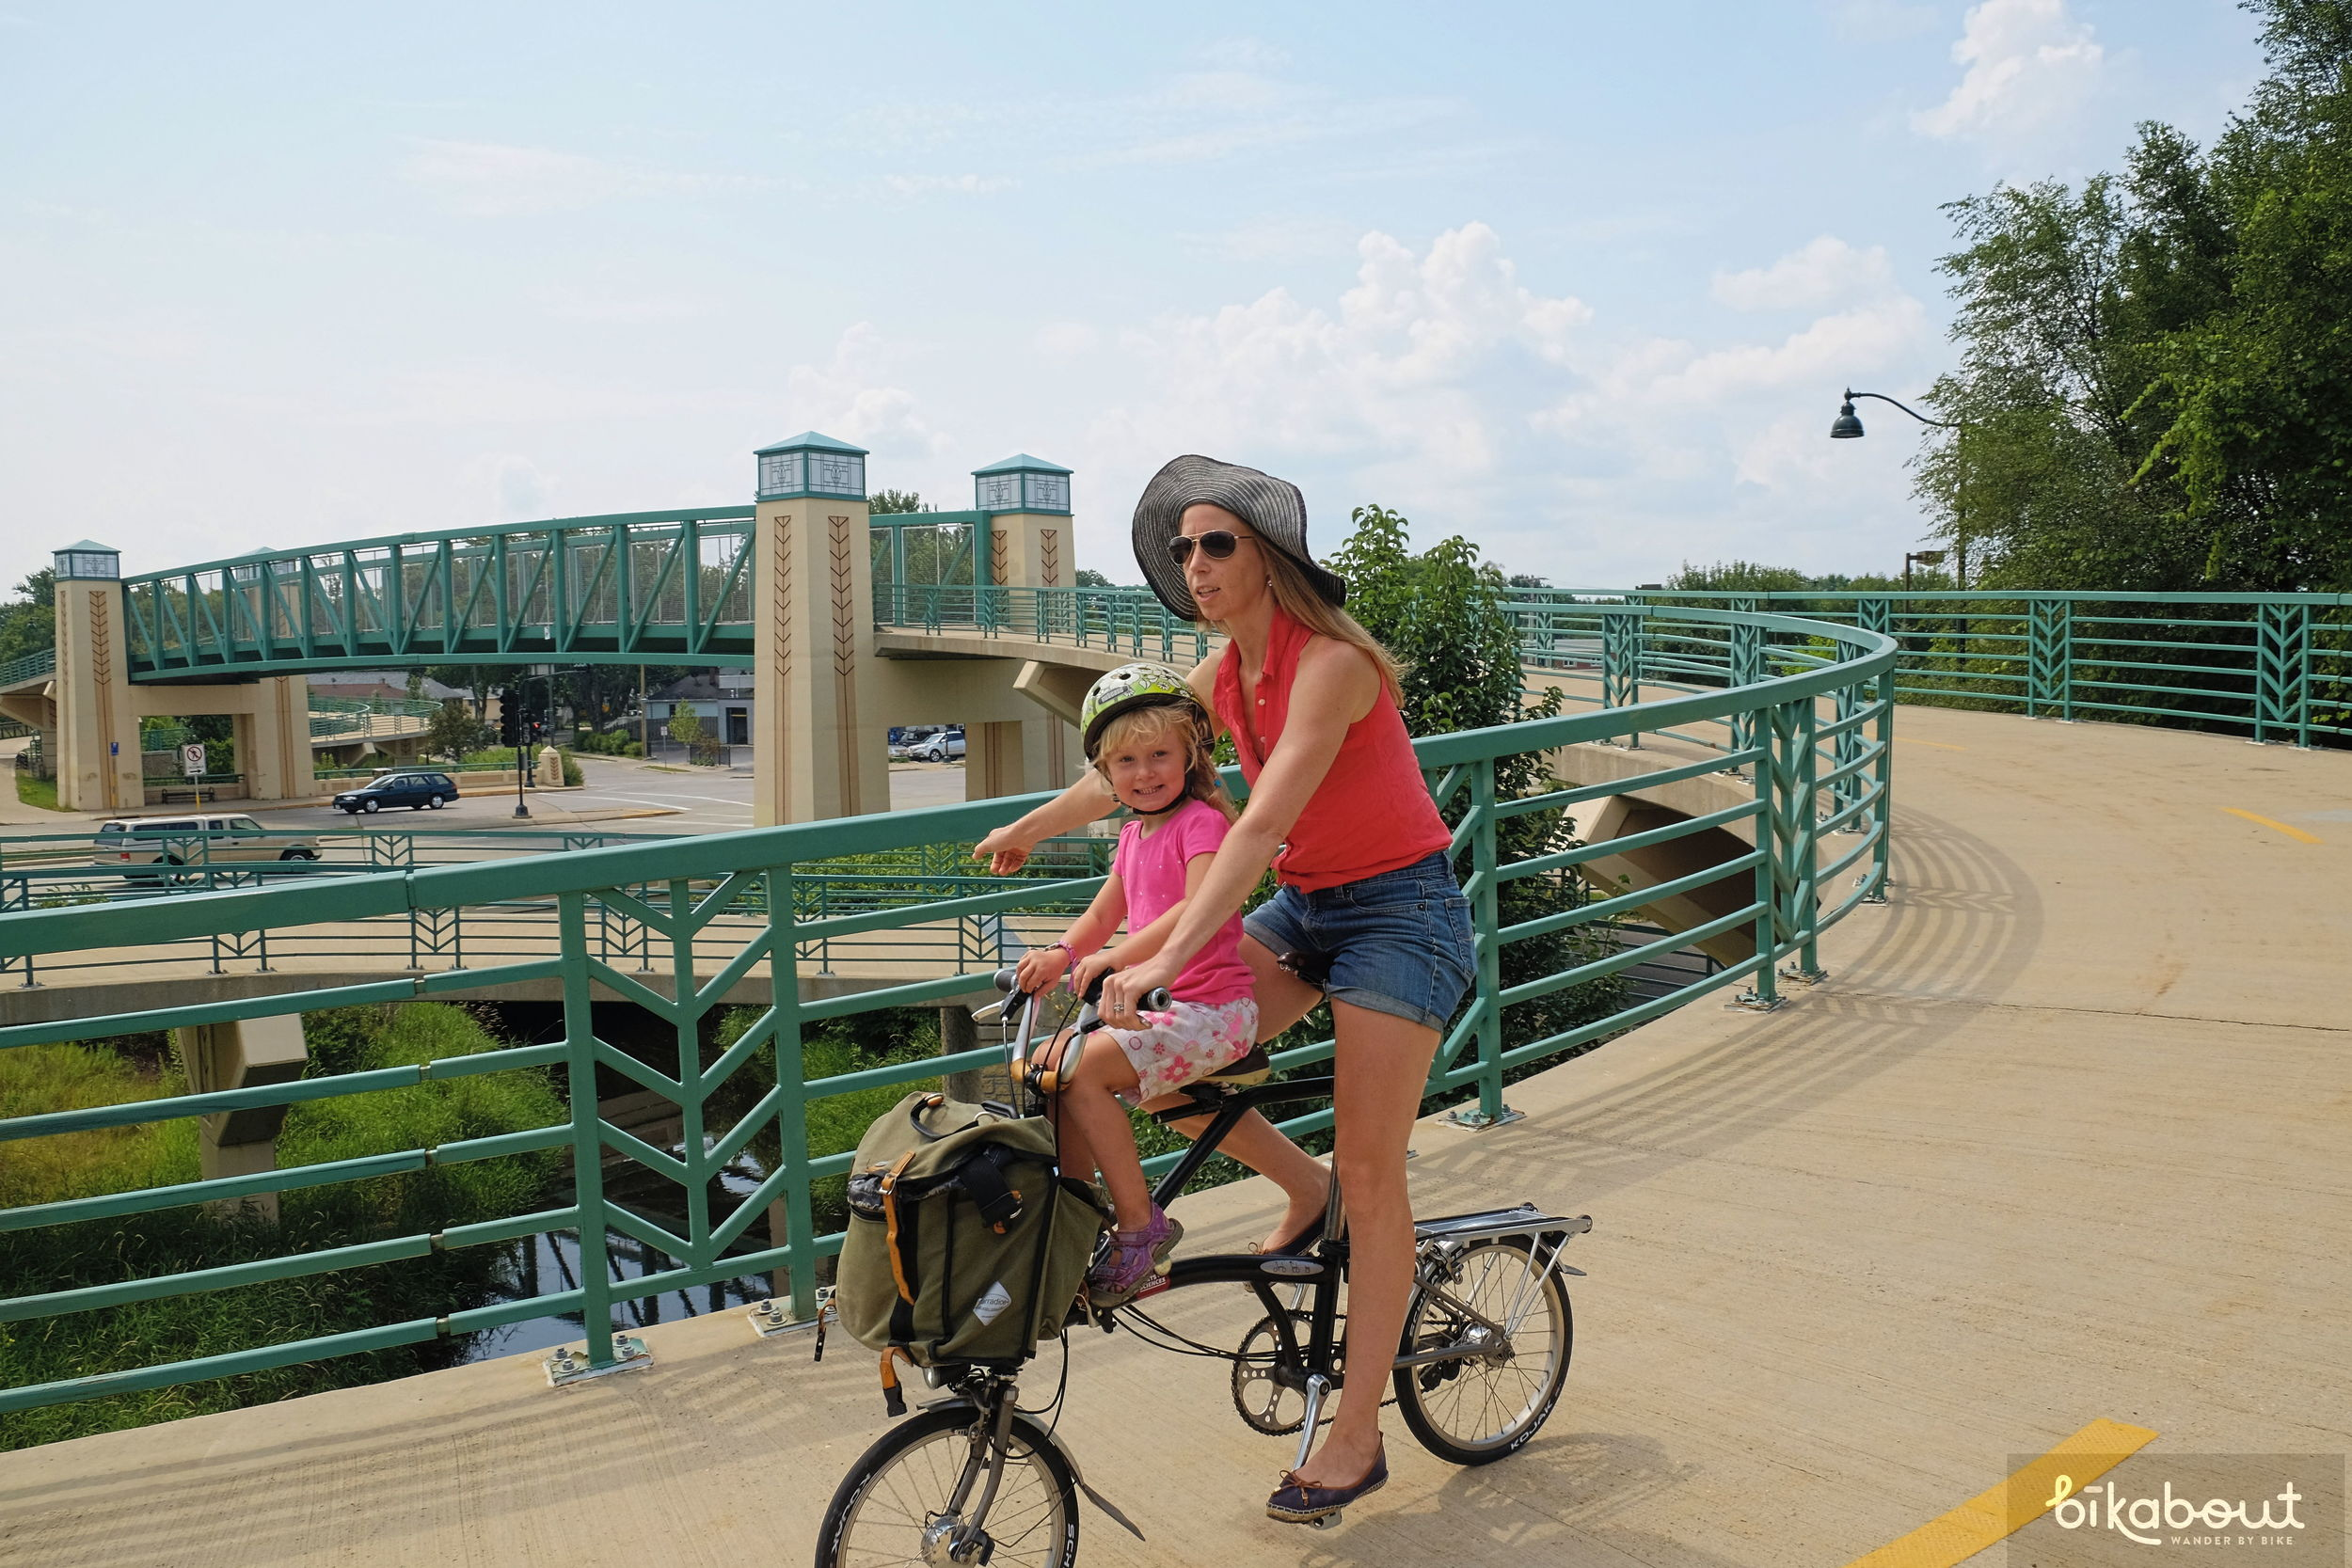 Bike bridges connect trails like the Stark River over busy streets and highways in Madison.